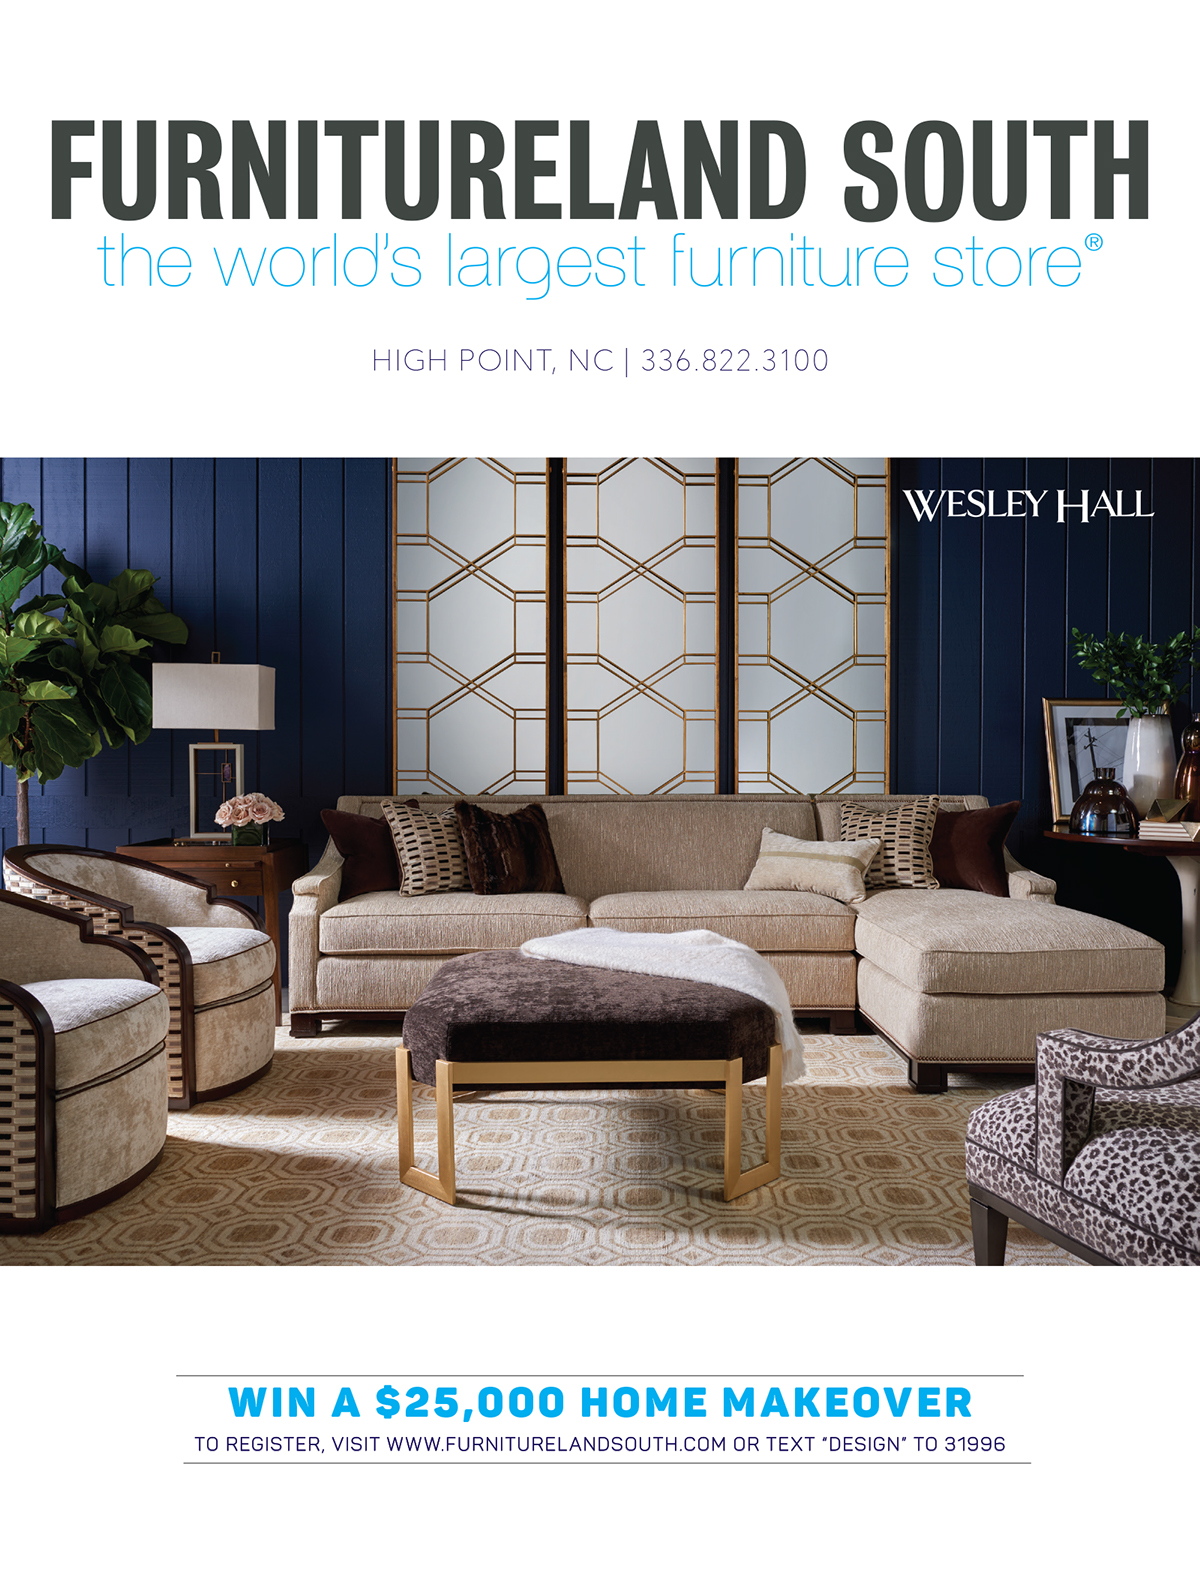 Print advertising for furnitureland south on pantone for Furnitureland south